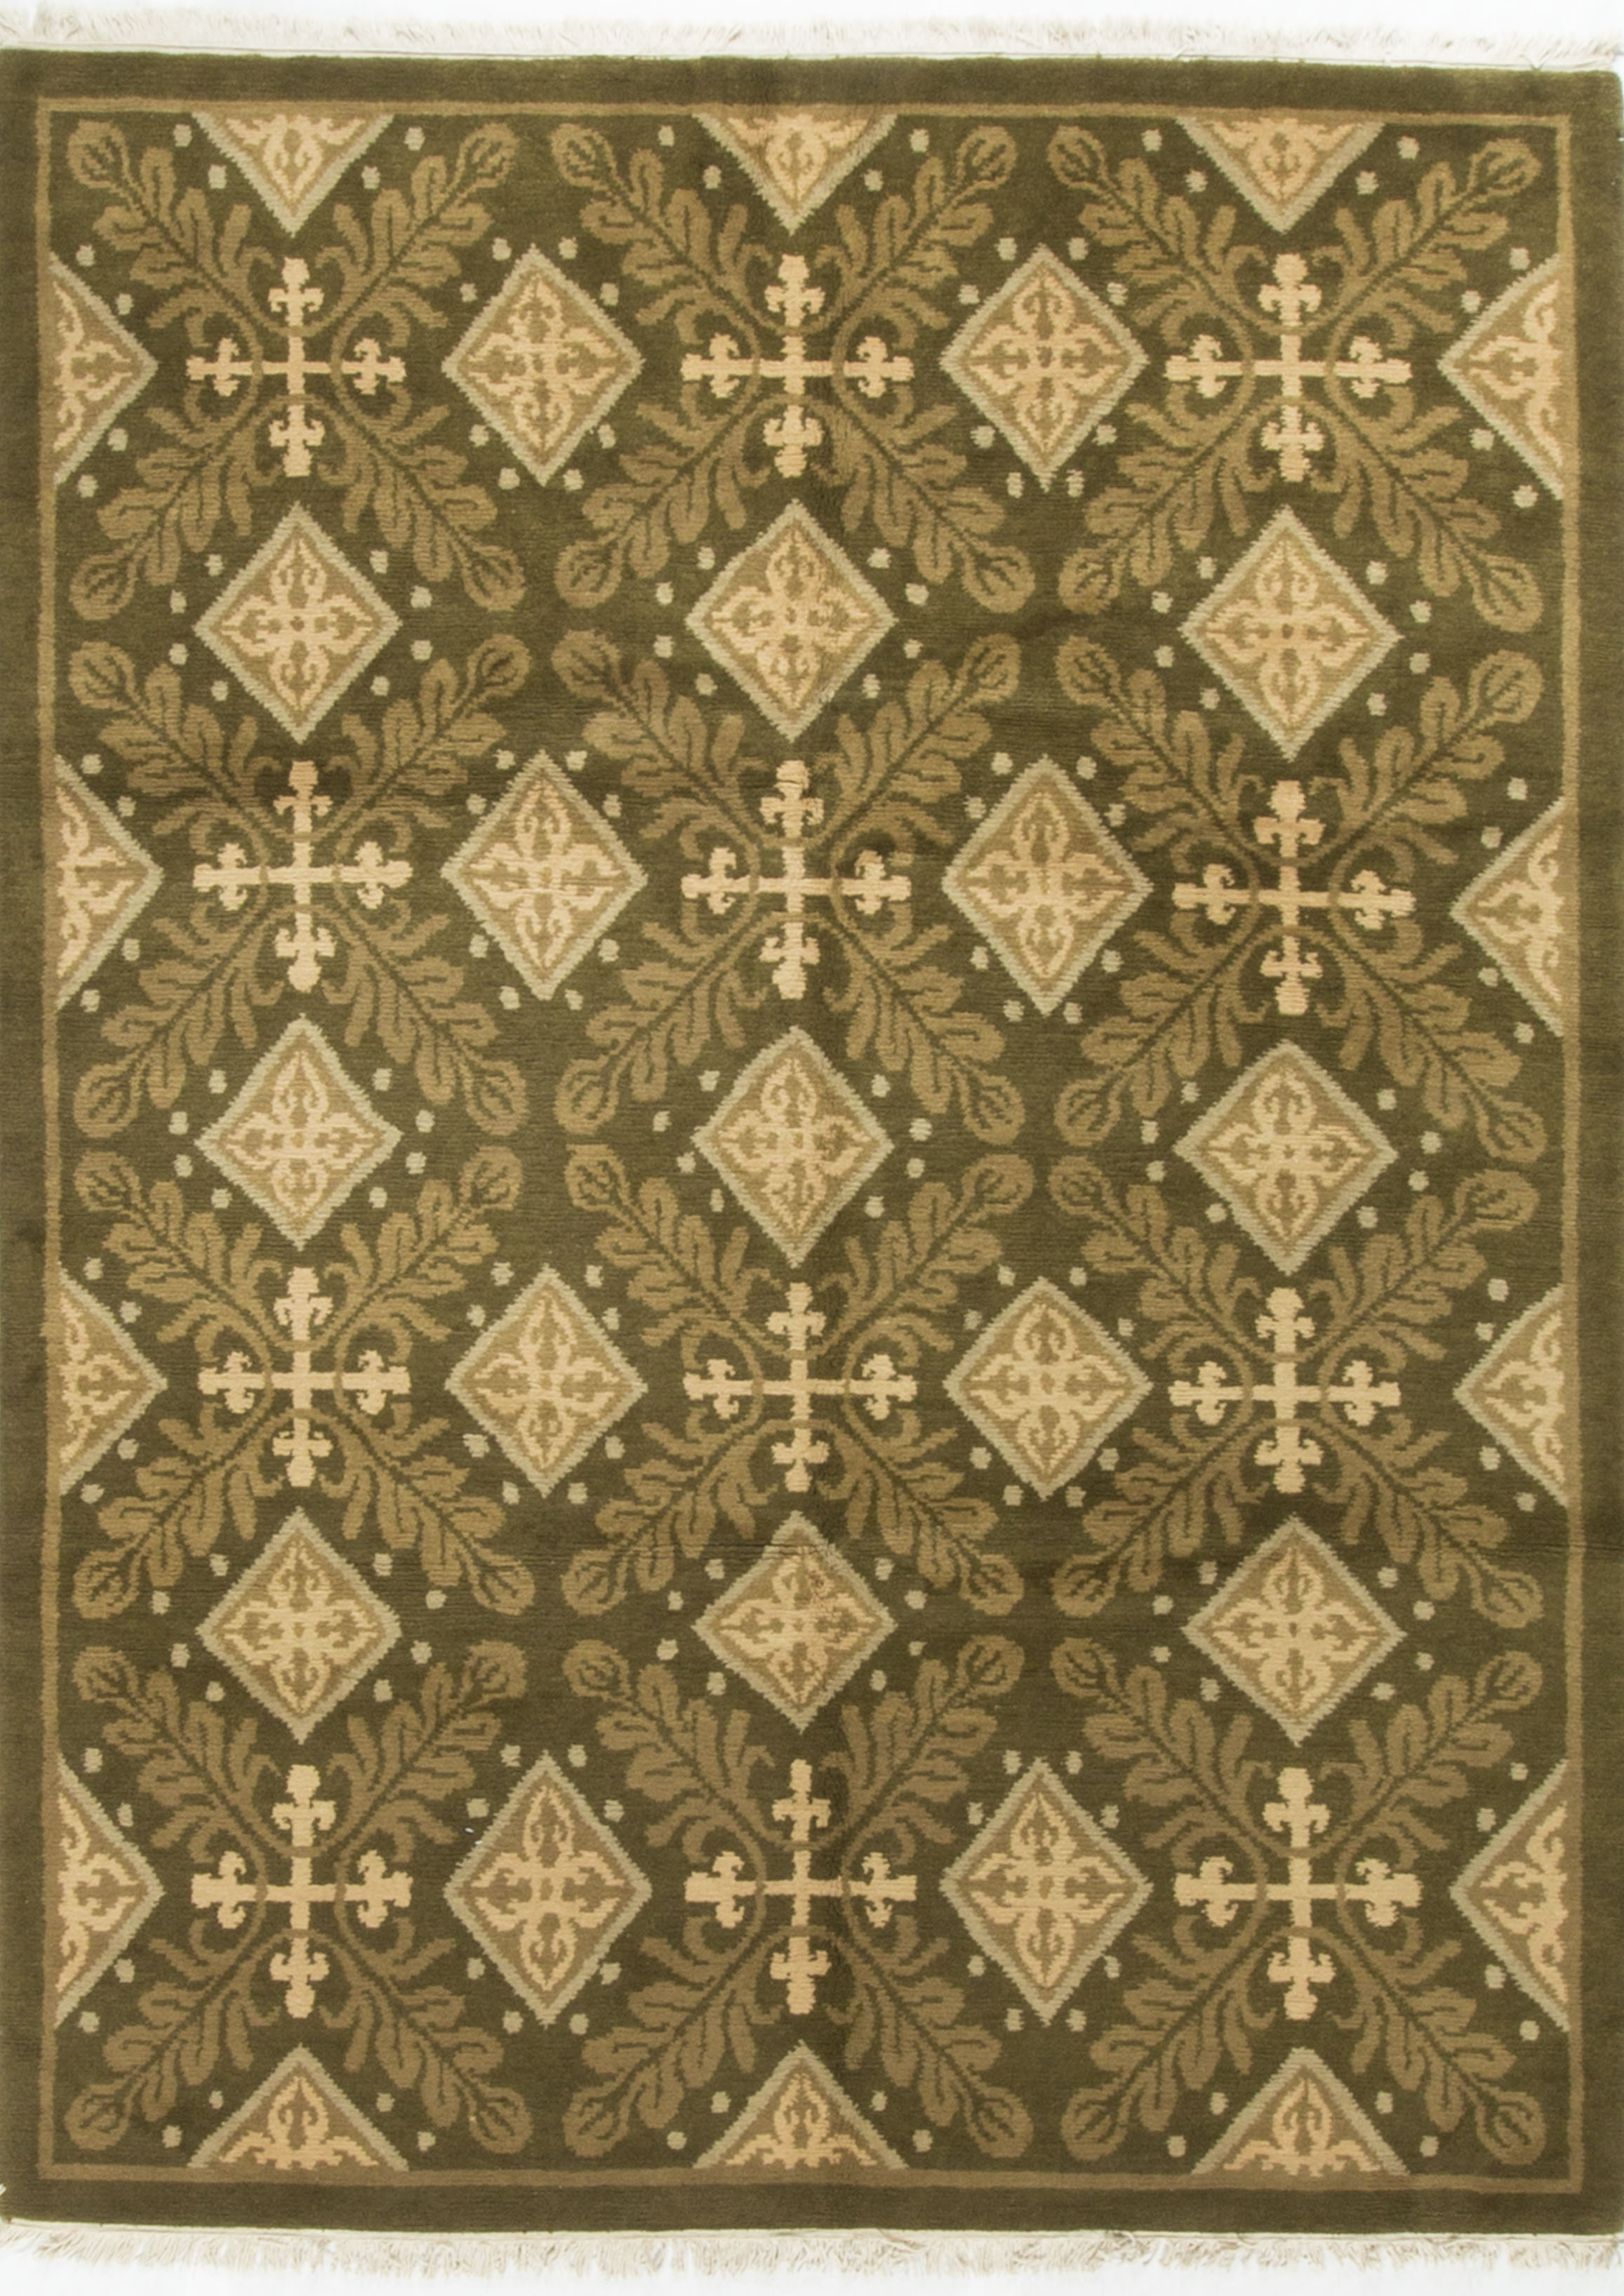 Contemporary Hand Knotted Wool Rug 7 11 215 10 4 Chairish